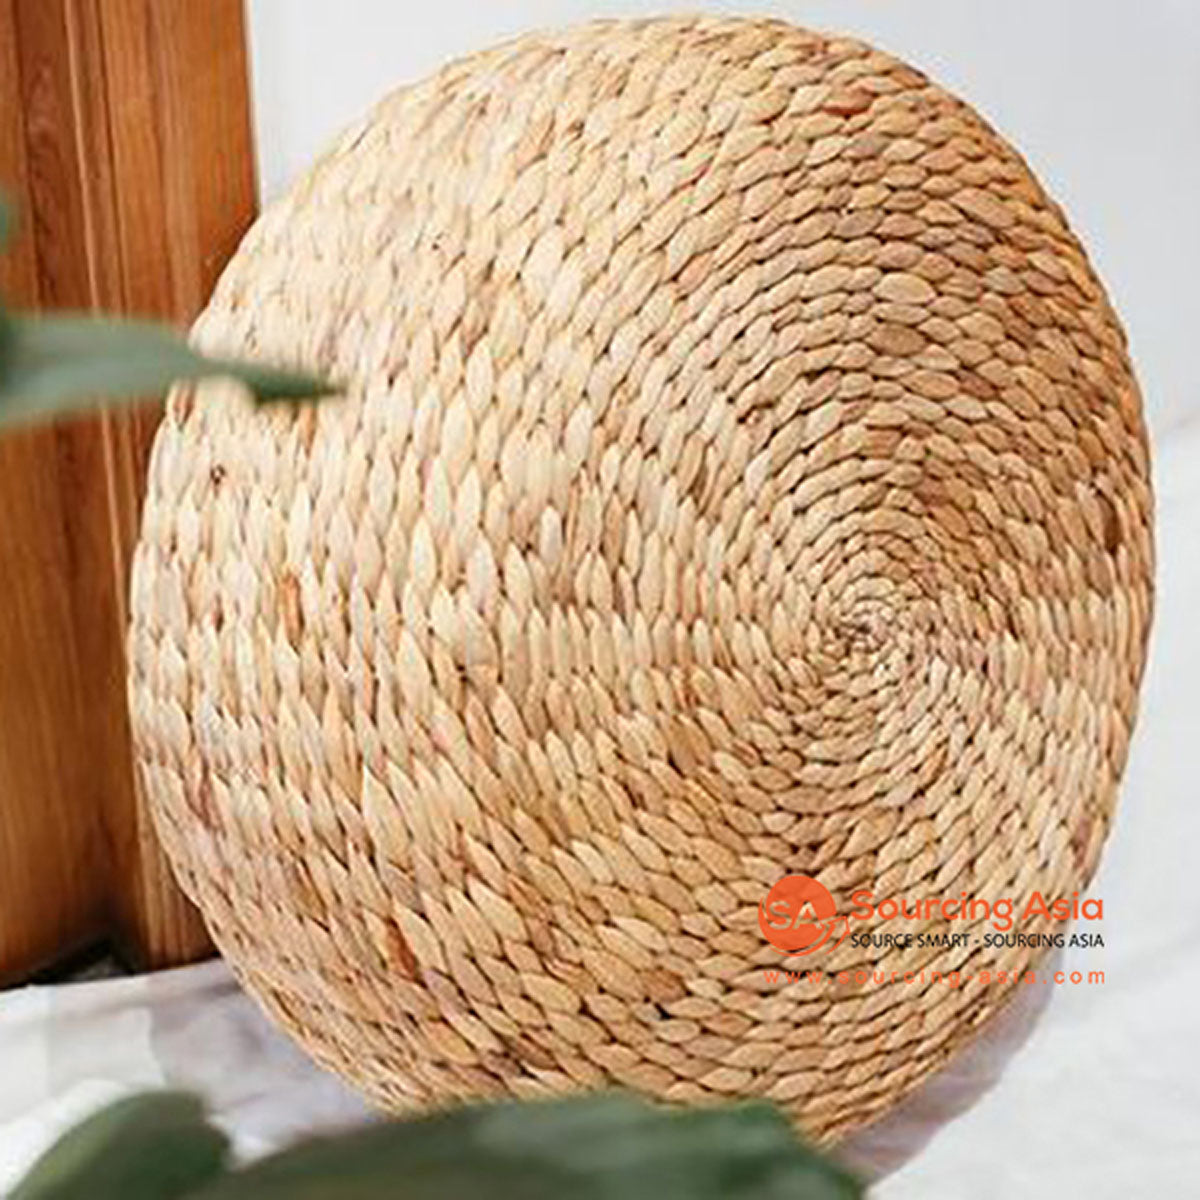 SHL136 NATURAL WATER HYACINTH POUFFES